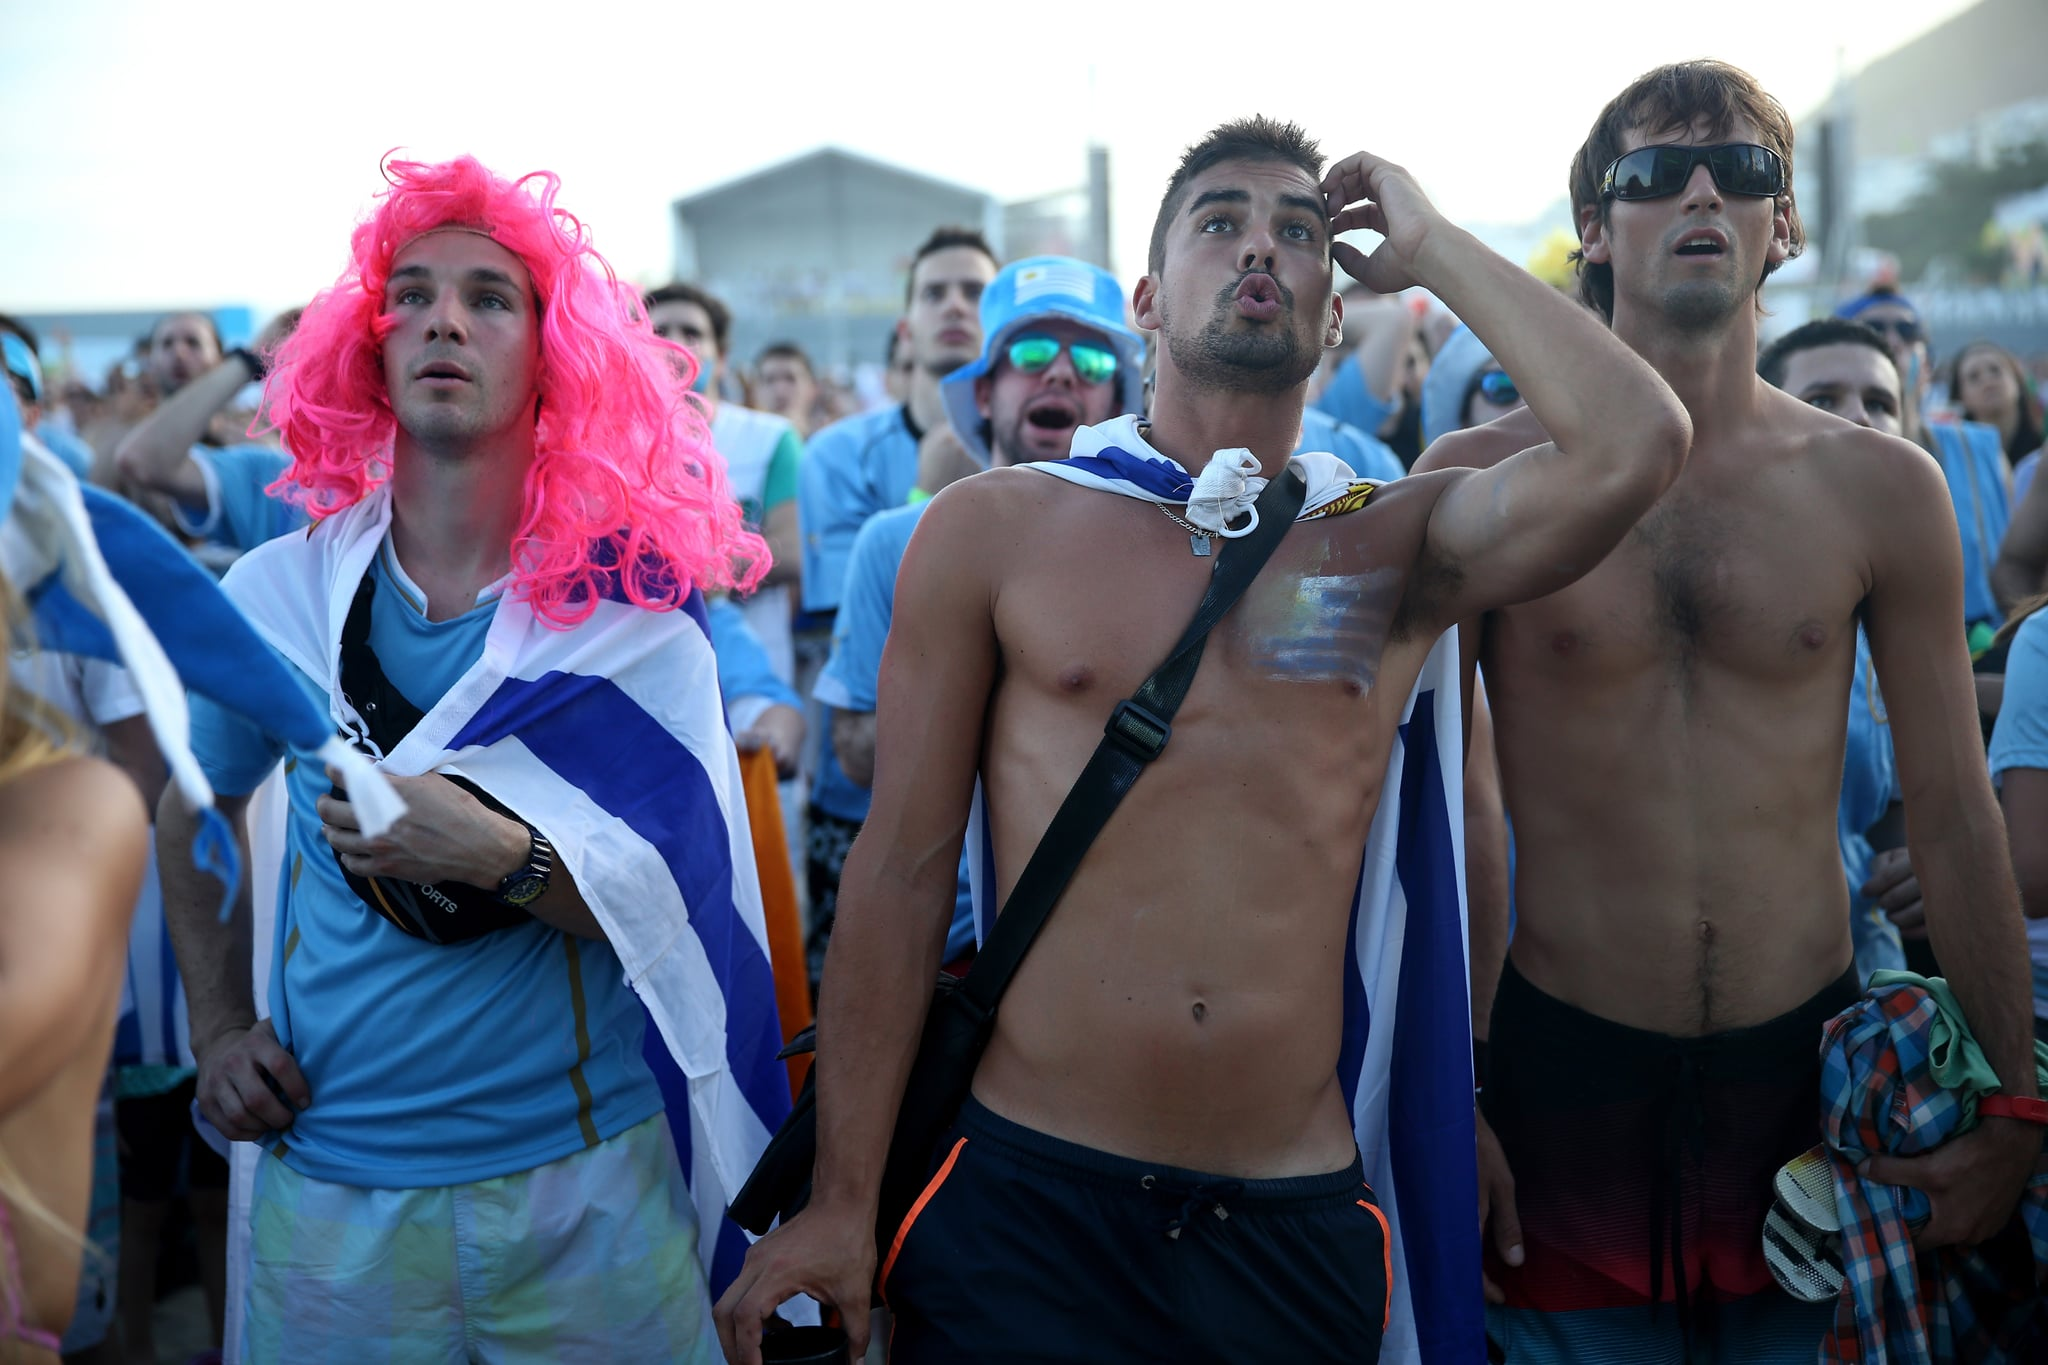 In Rio de Janeiro, Brazil, fans of Uruguay reacted as they watched the game against Costa Rica.